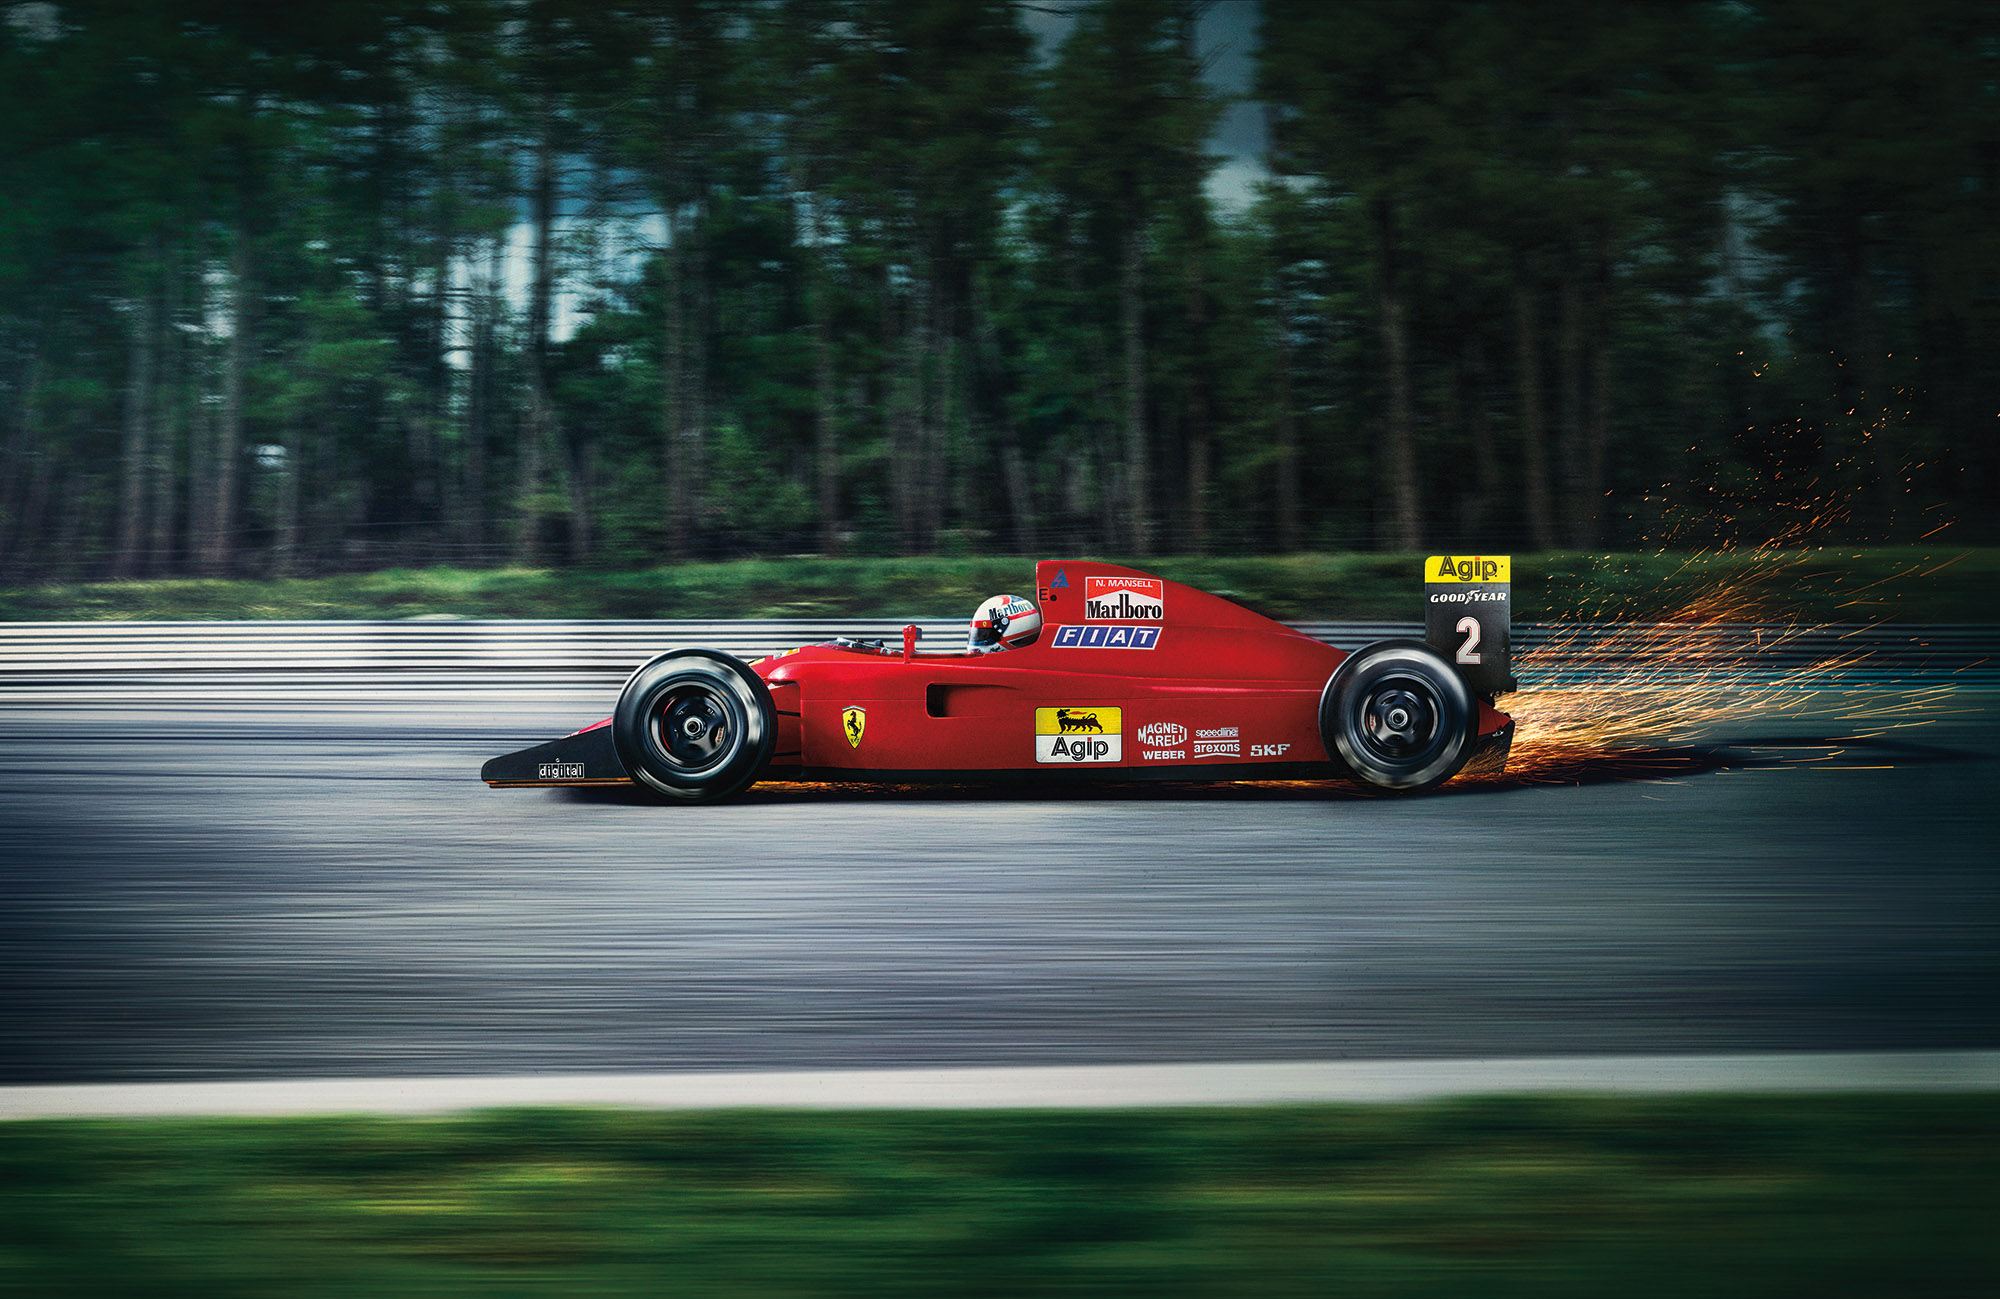 Ferrari F641 by Automotive Photographer Blair Bunting